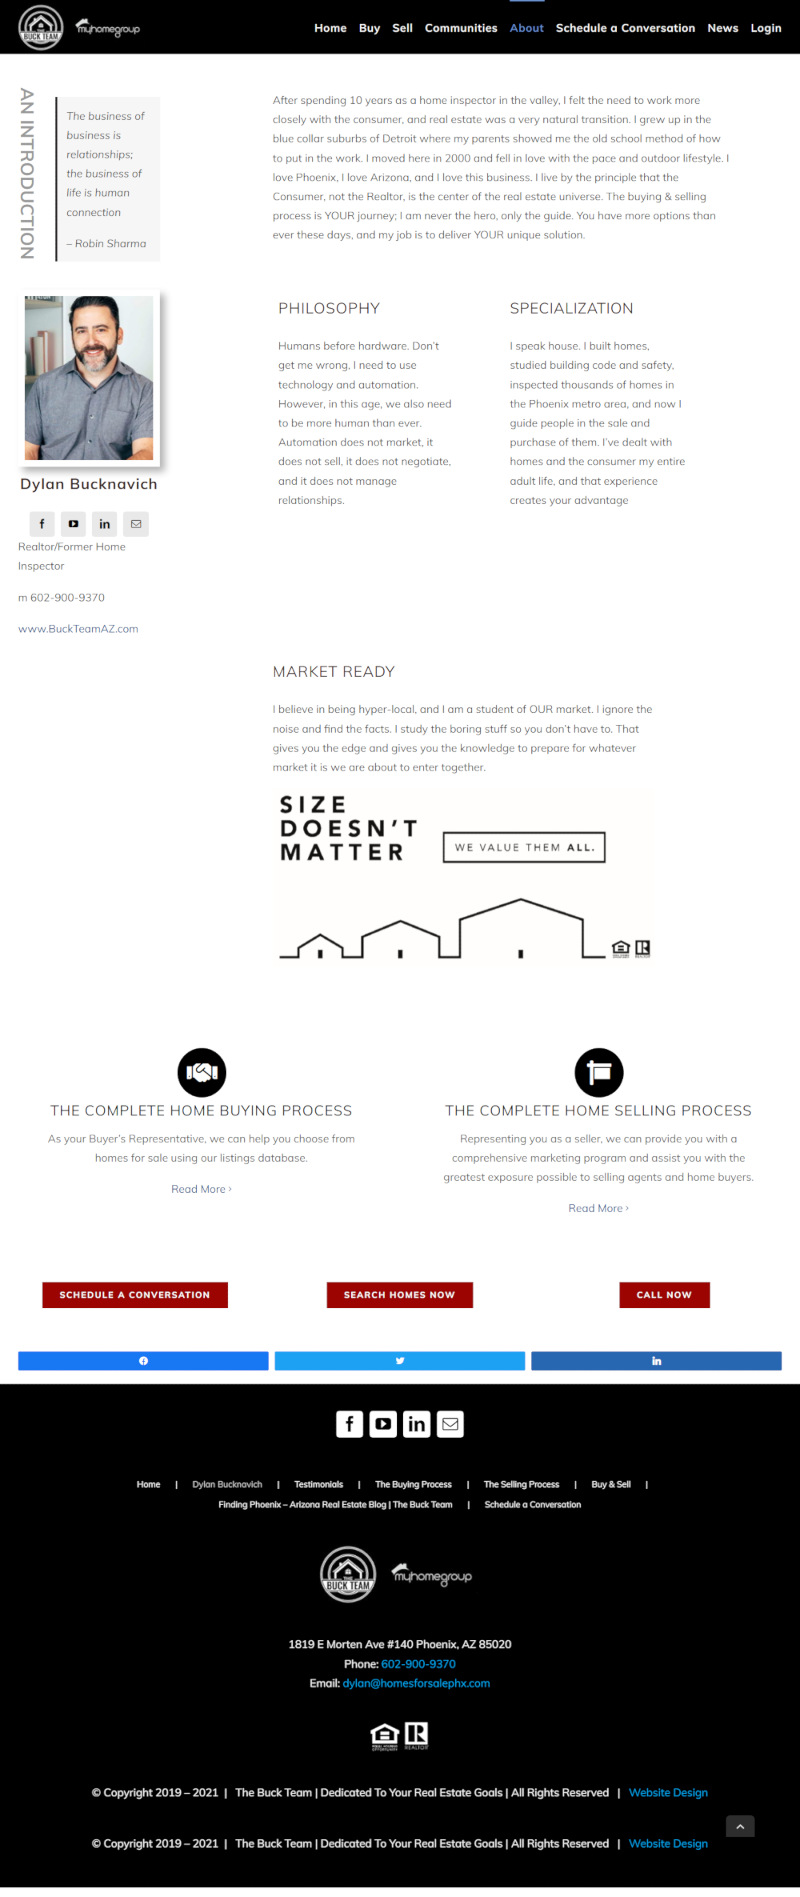 The Buck Team Real Estate about page website design